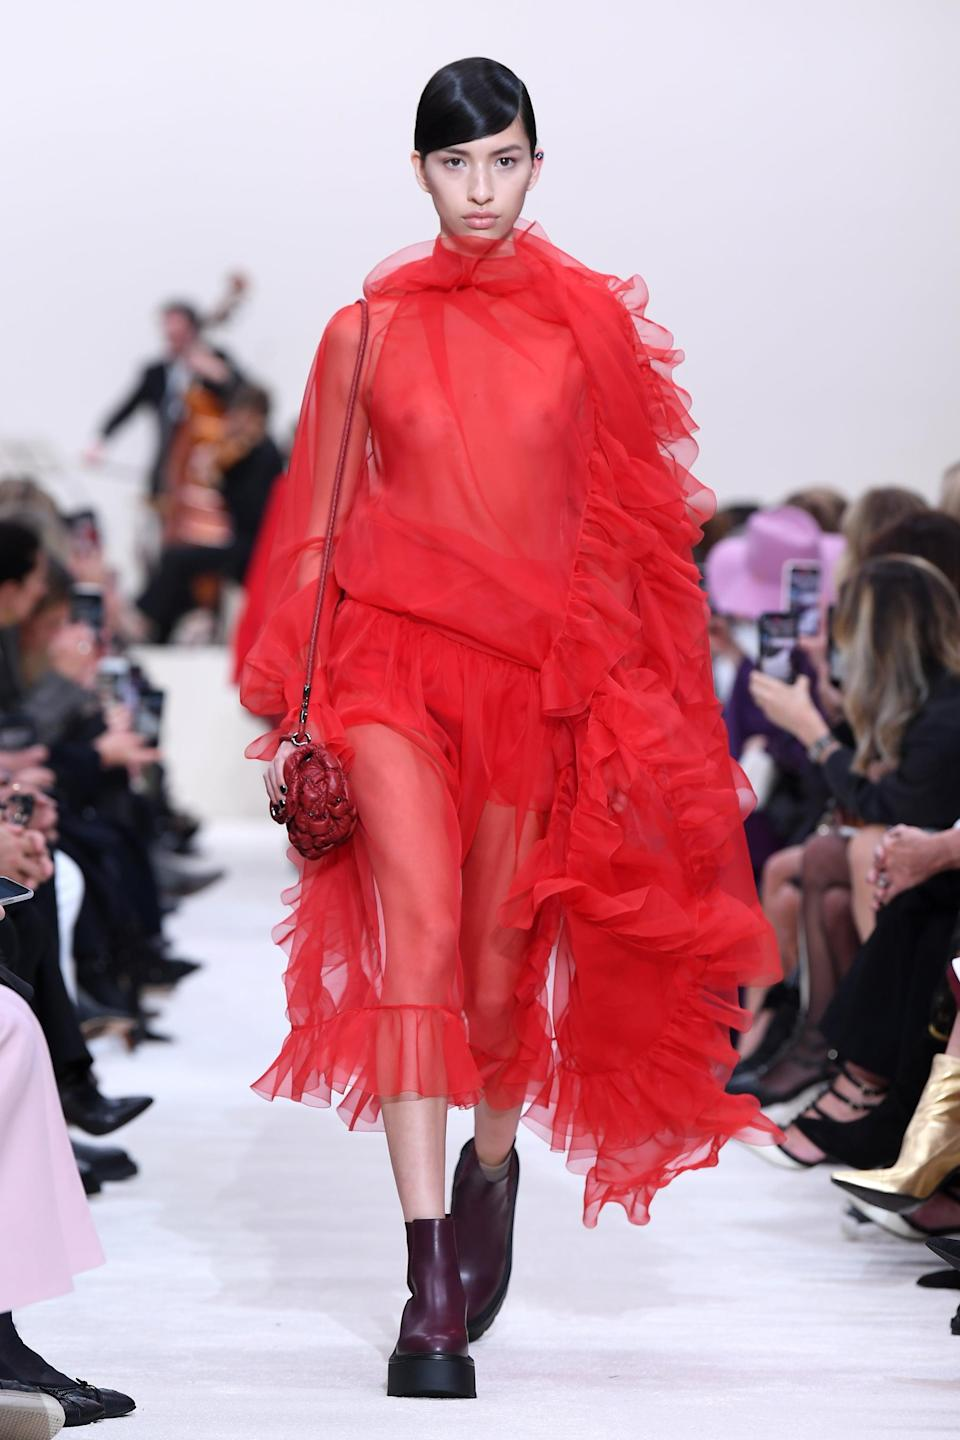 <p>If it doesn't feel like borderline couture, is it even Valentino? Something about designer Pierpaolo Piccioli's approach to femininity feels positively dreamy, and we're absolutely here for it. With any combination of sheer, flowy garments, tiered ruffles, and garden tones, you'll be just about ready to saunter down the runway yourself.</p>